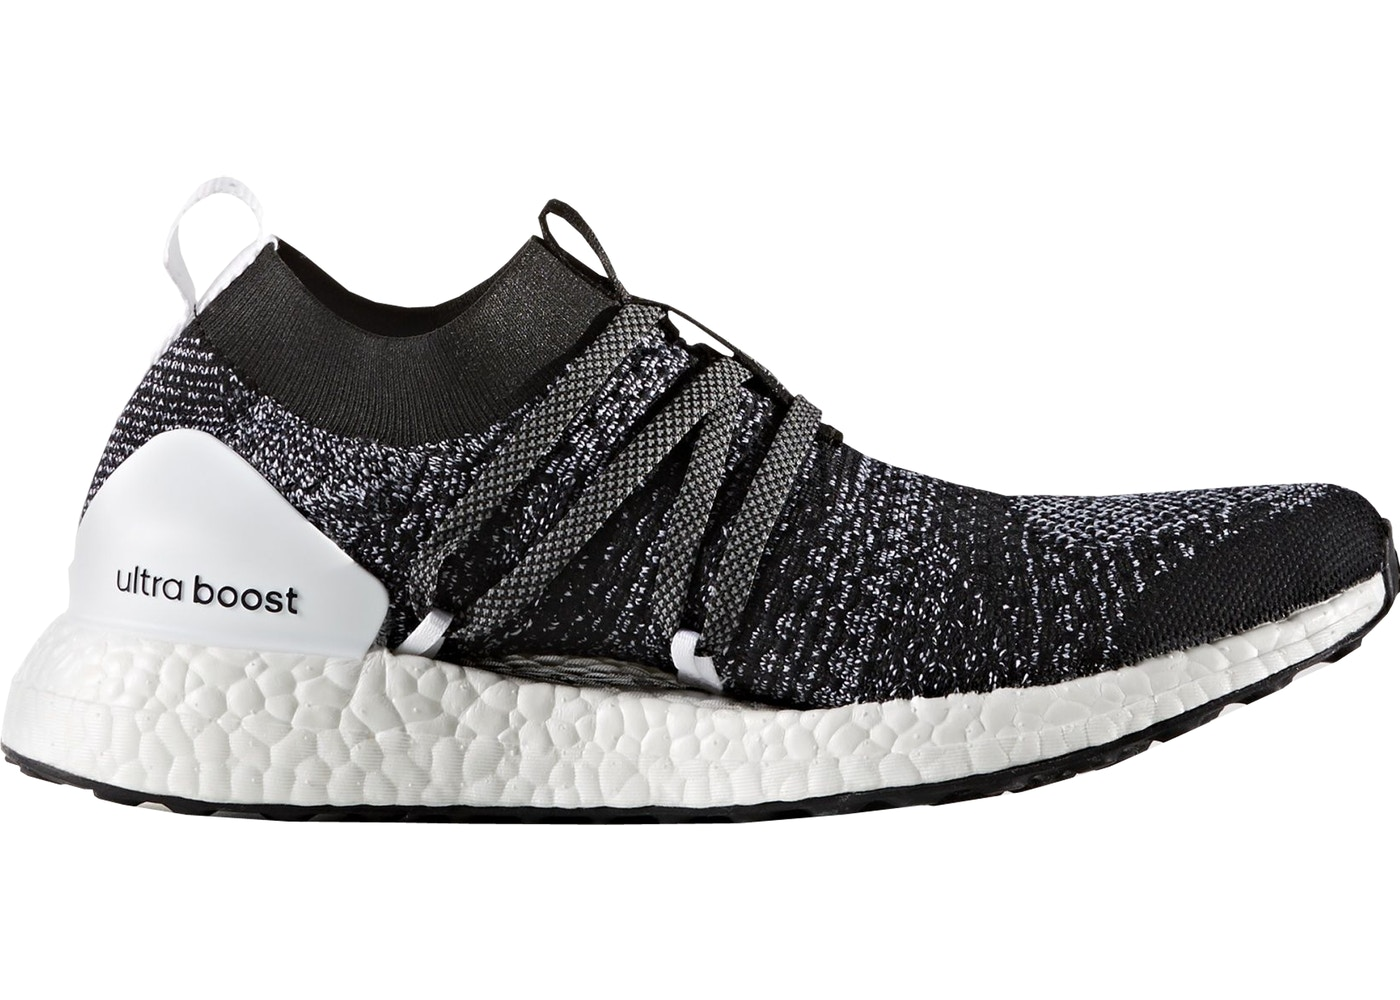 a111496c8 adidas Ultra Boost X Stella McCartney Black White (W) - BB5512